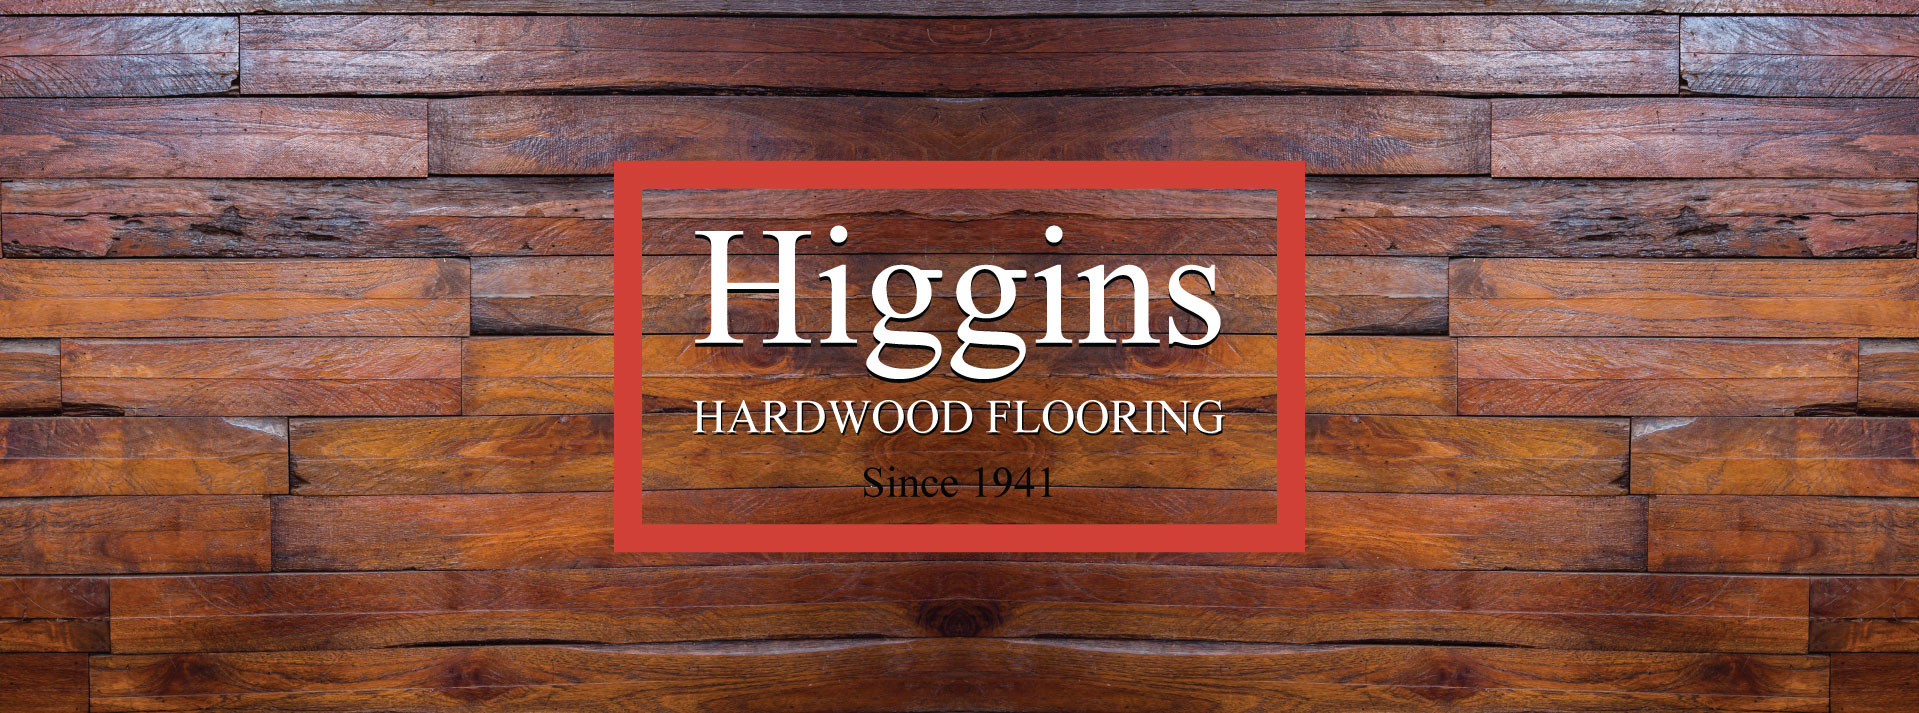 hardwood floor refinishing products reviews of higgins hardwood flooring in peterborough oshawa lindsay ajax regarding office hours